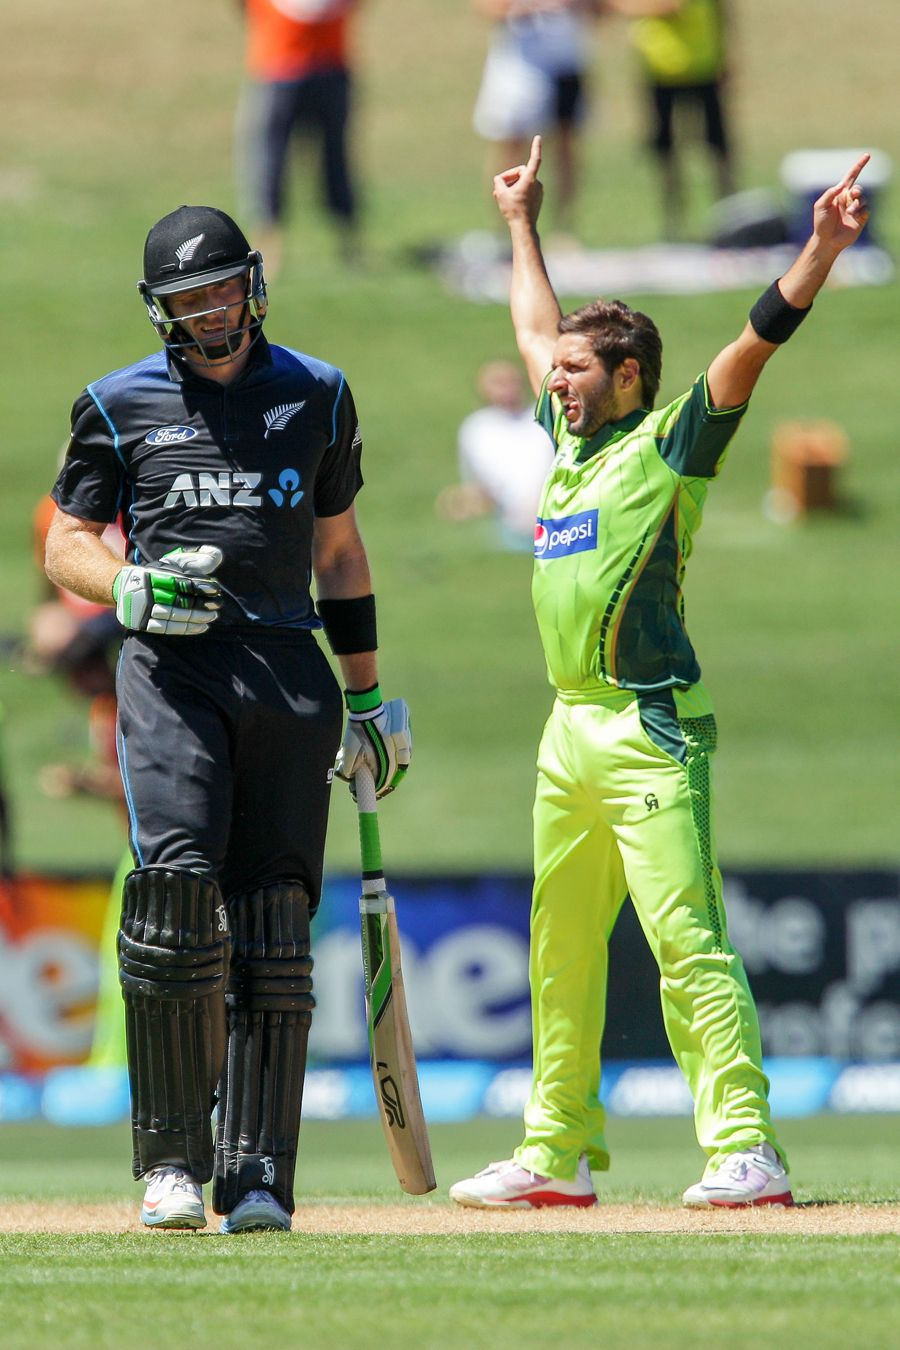 Shahid Afridi brings out his signature celebration after getting Brendon McCullum, New Zealand v Pakistan, 2nd ODI, Napier, February 3, 2015